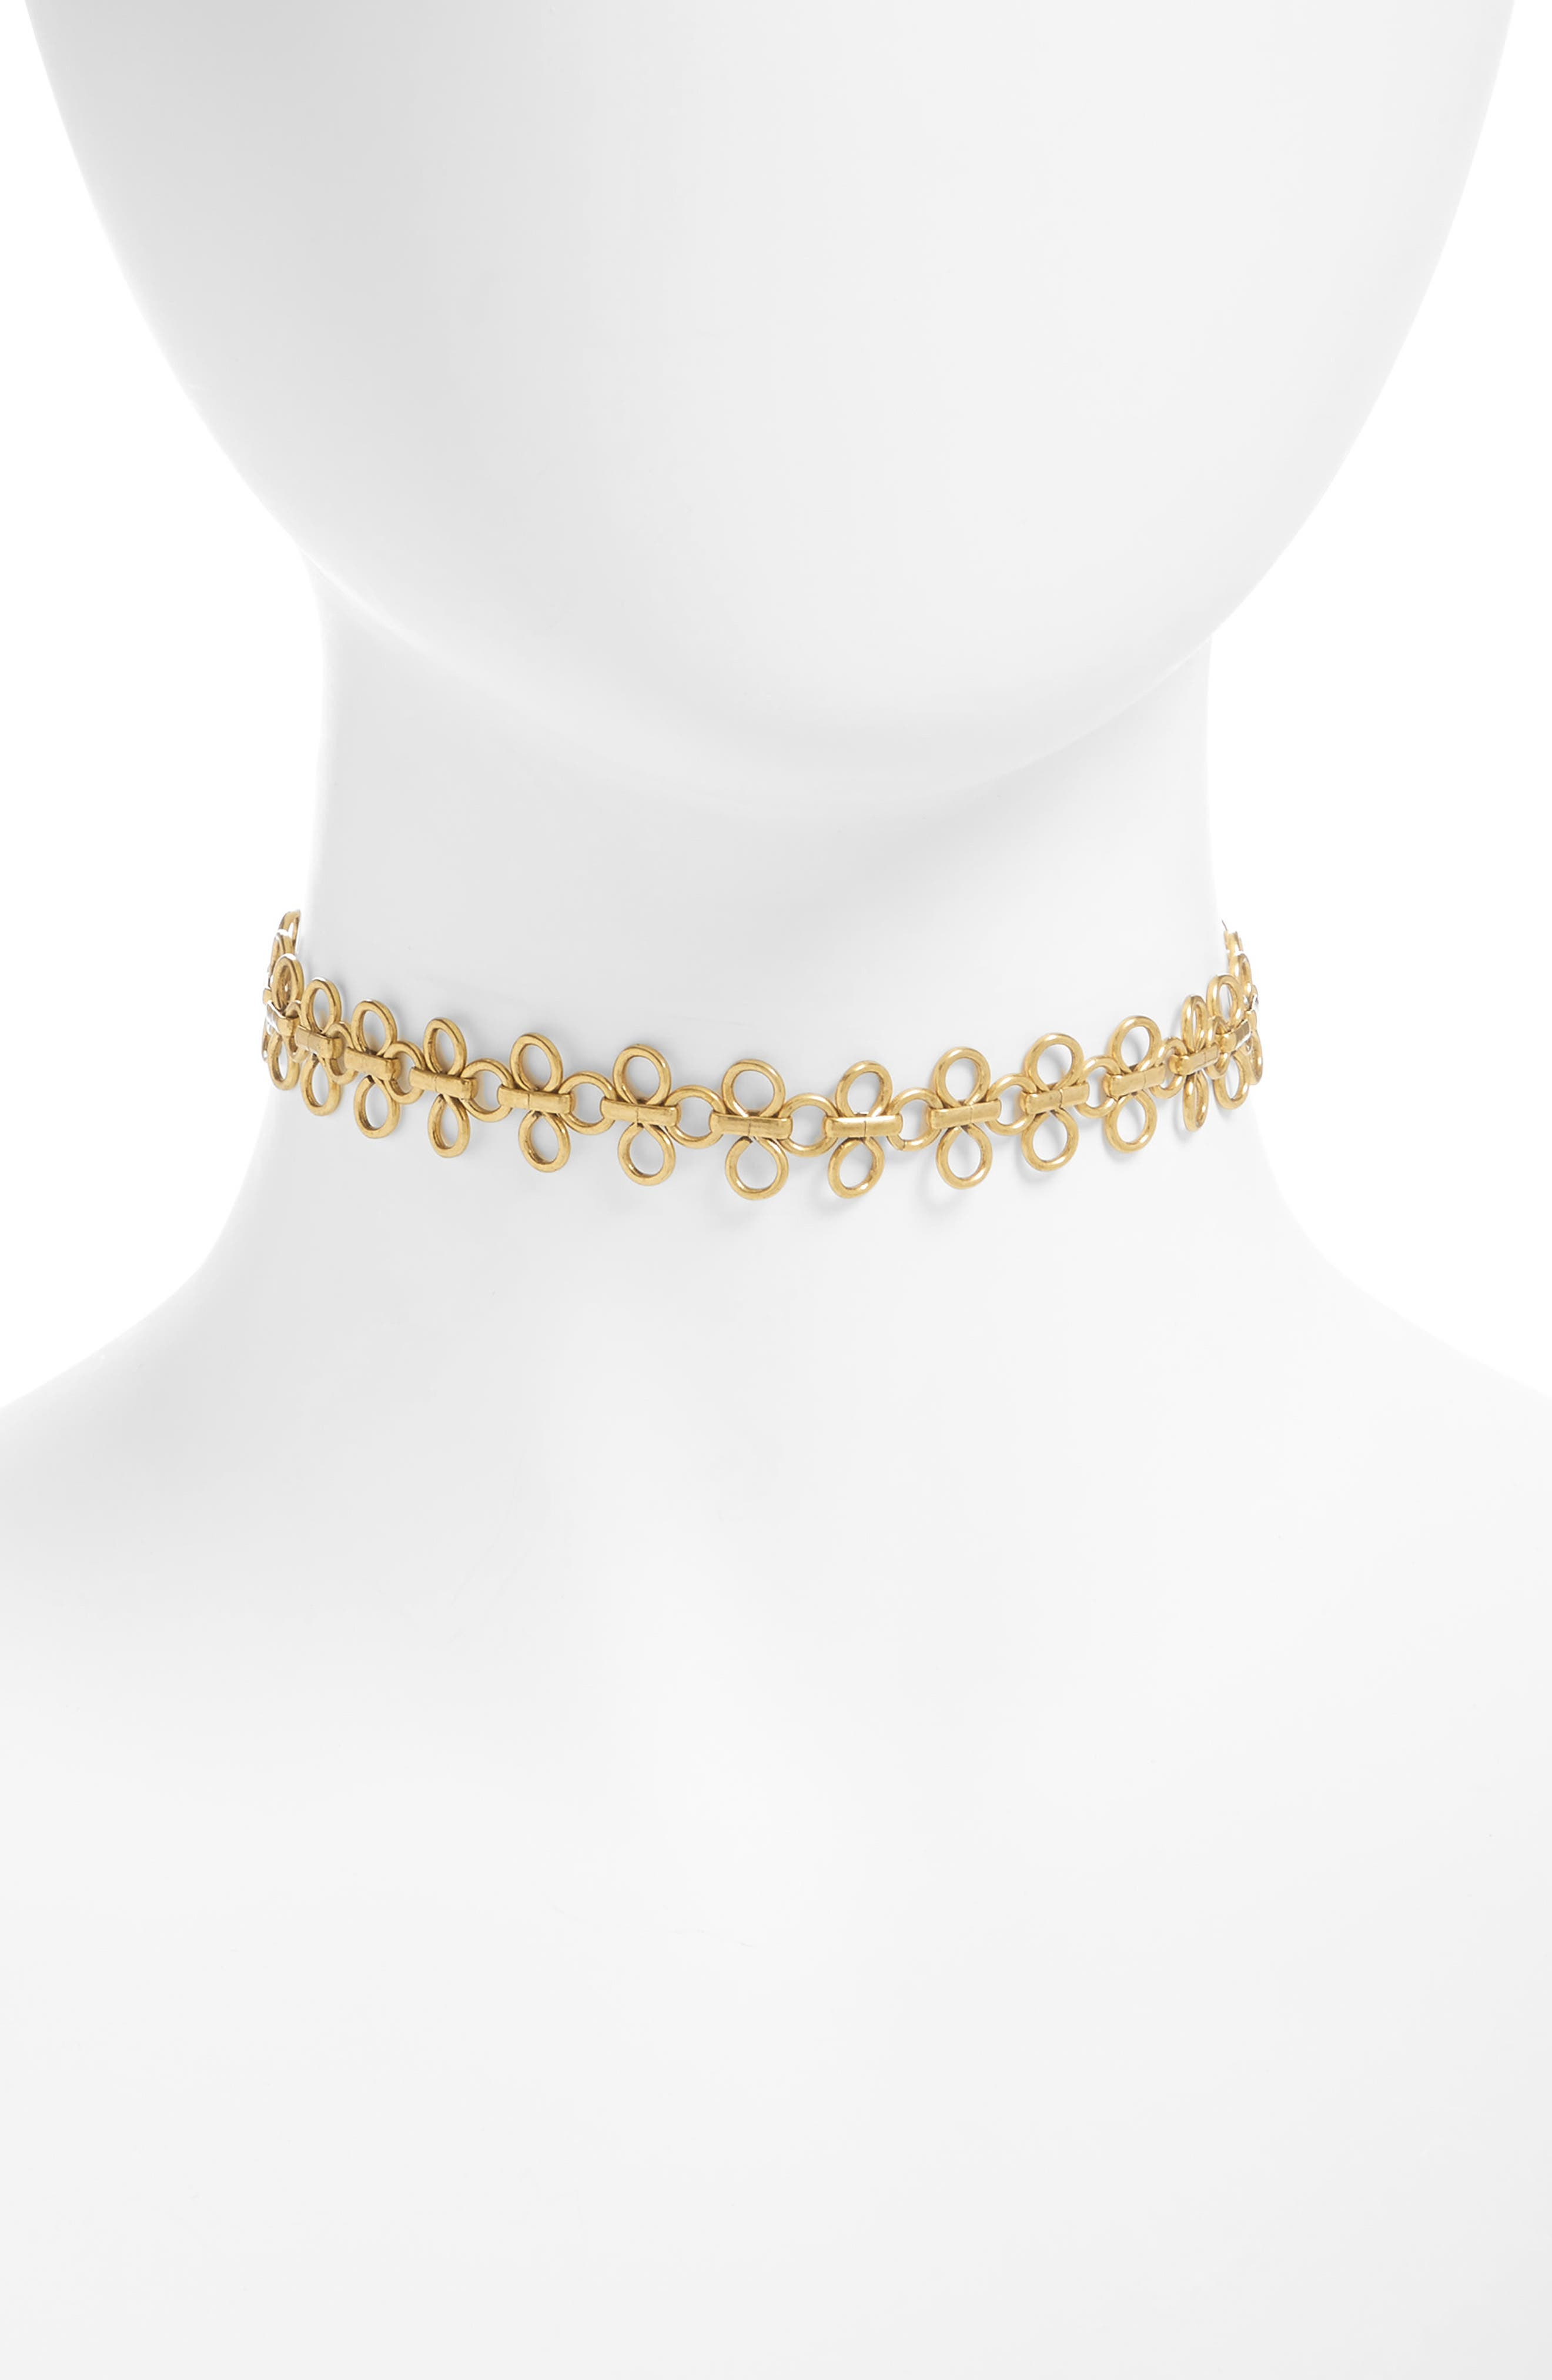 Main Image - Luv AJ Lace Link Choker Necklace